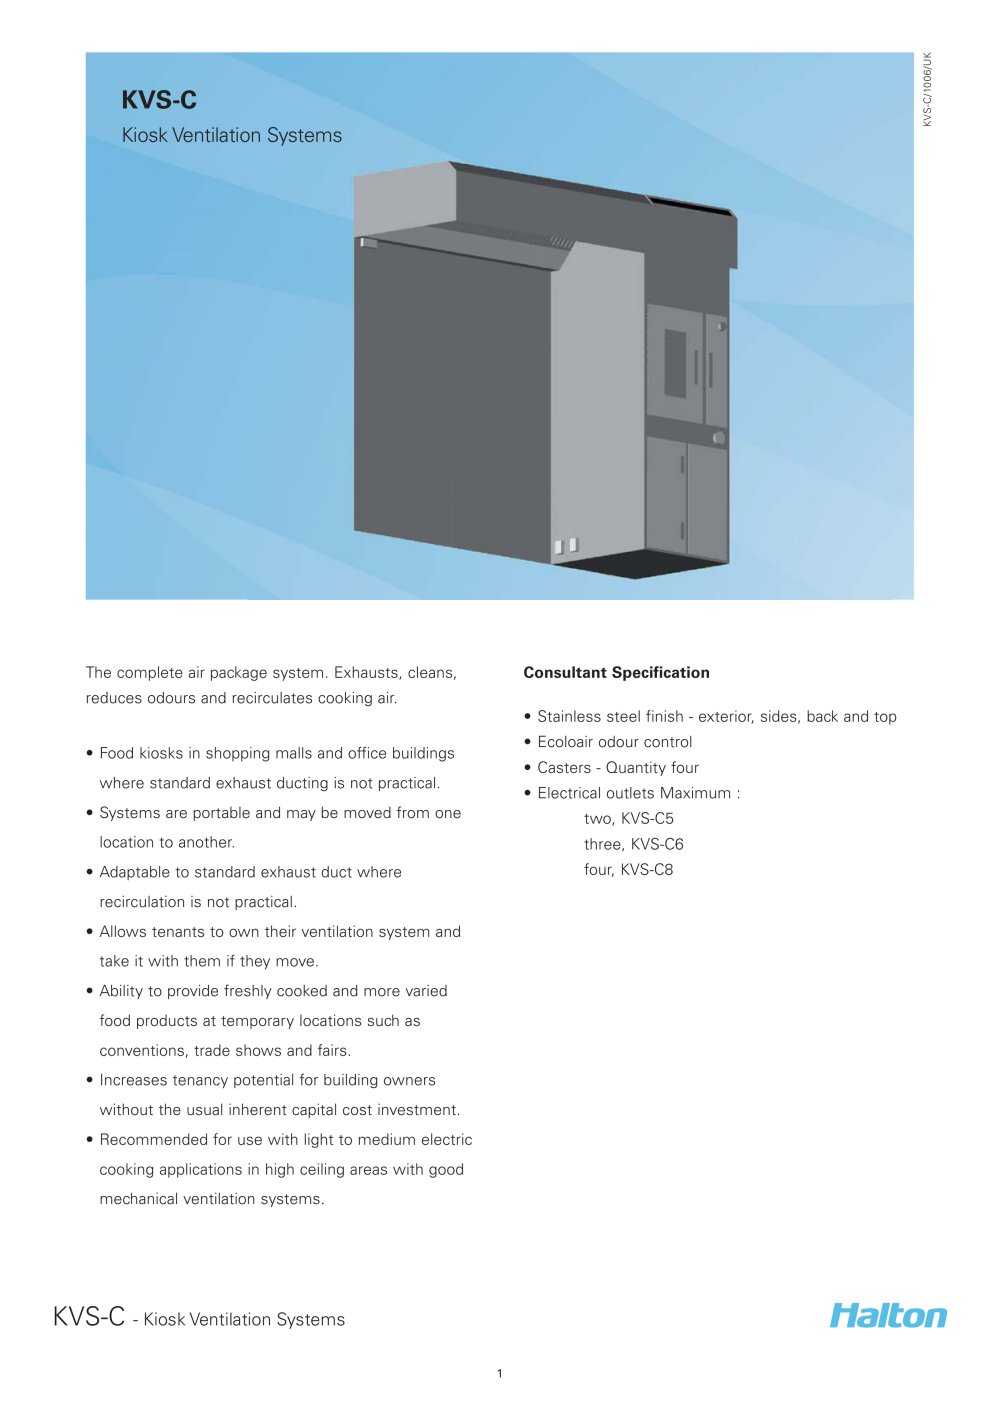 kvs c kiosk ventilation systems halton pdf catalogues kvs c kiosk ventilation systems 1 3 pages